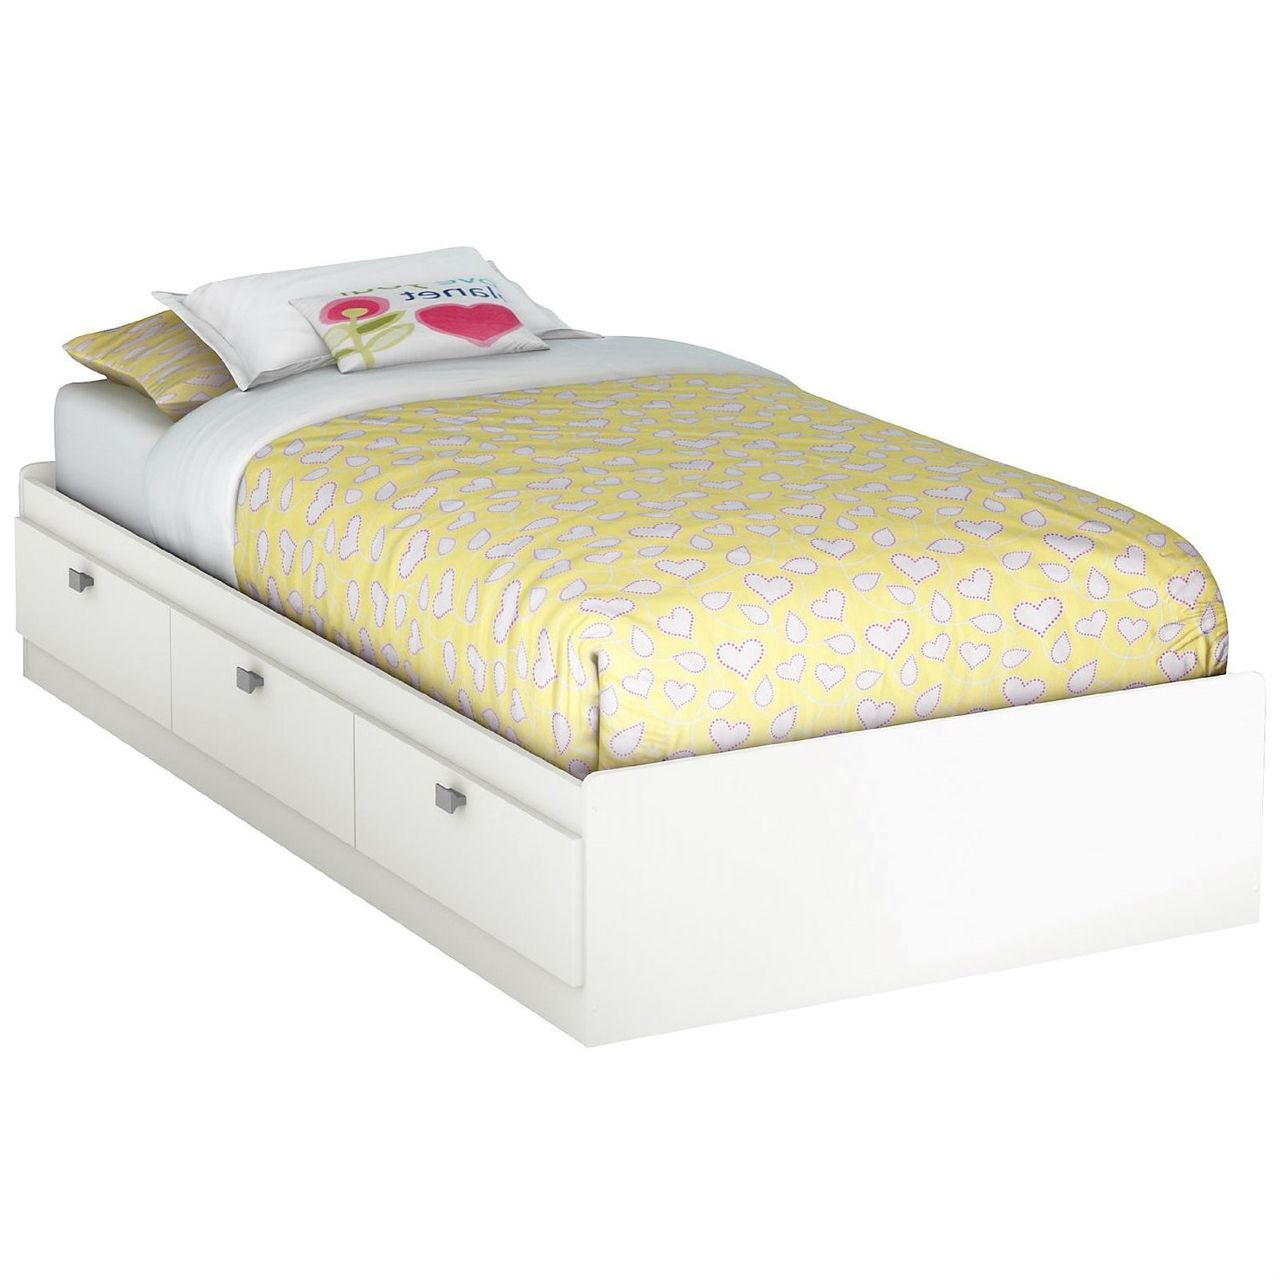 Twin White Platform Bed For Kids Teens Adults With 3 Storage